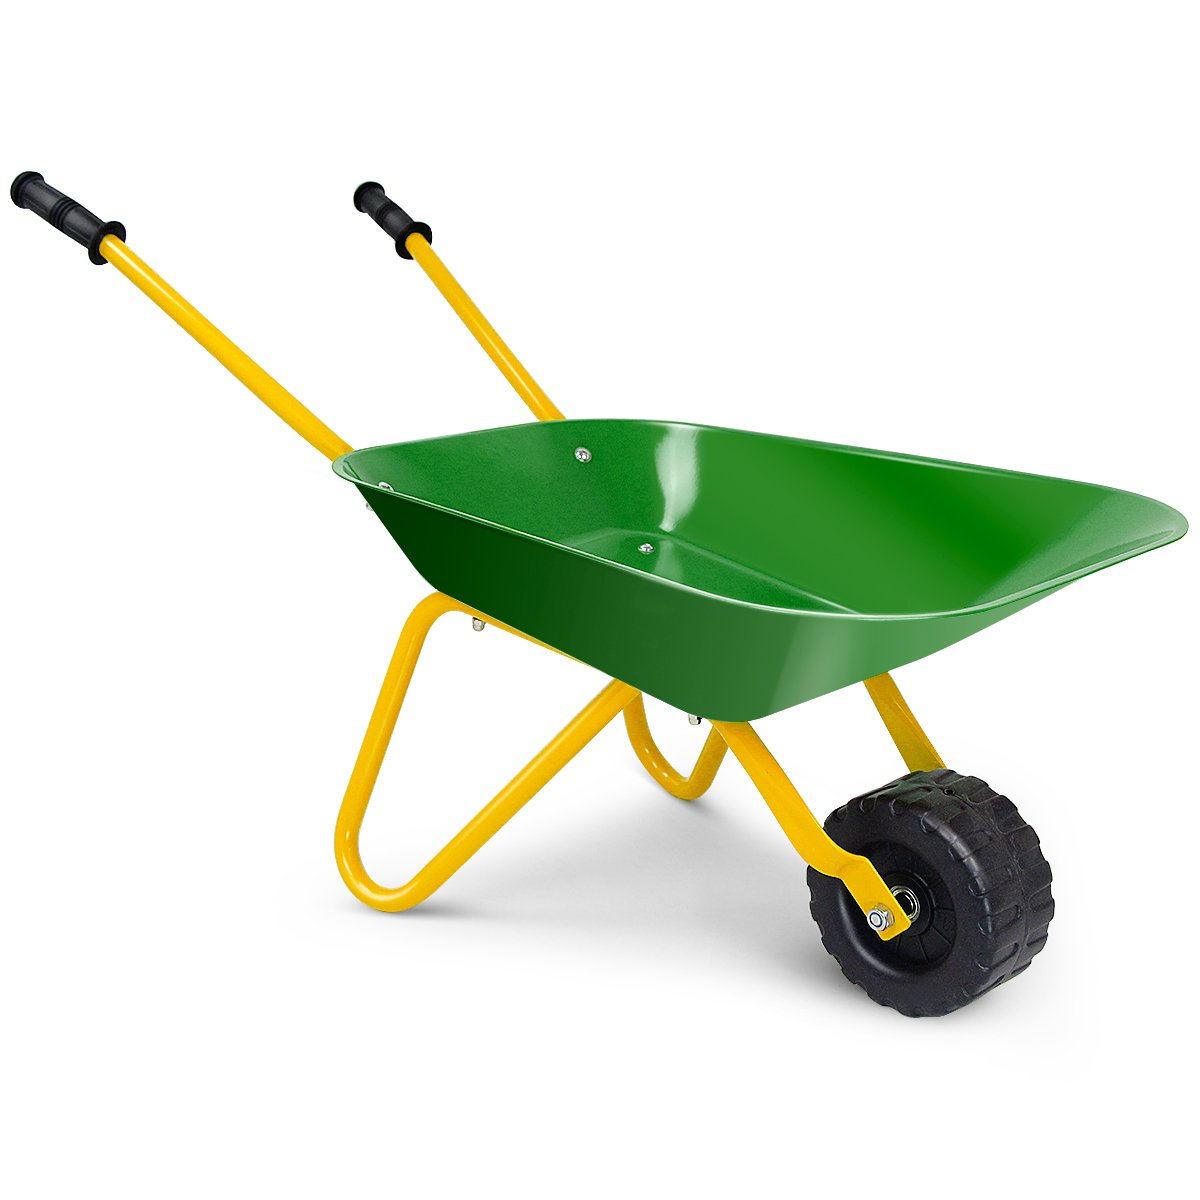 Costzon Kids Metal Wheelbarrow, Yard Rover Steel Tray, Metal Construction Toys Kart, Tote Dirt/Leaves/Tools in Garden for Toddlers, Green by Costzon